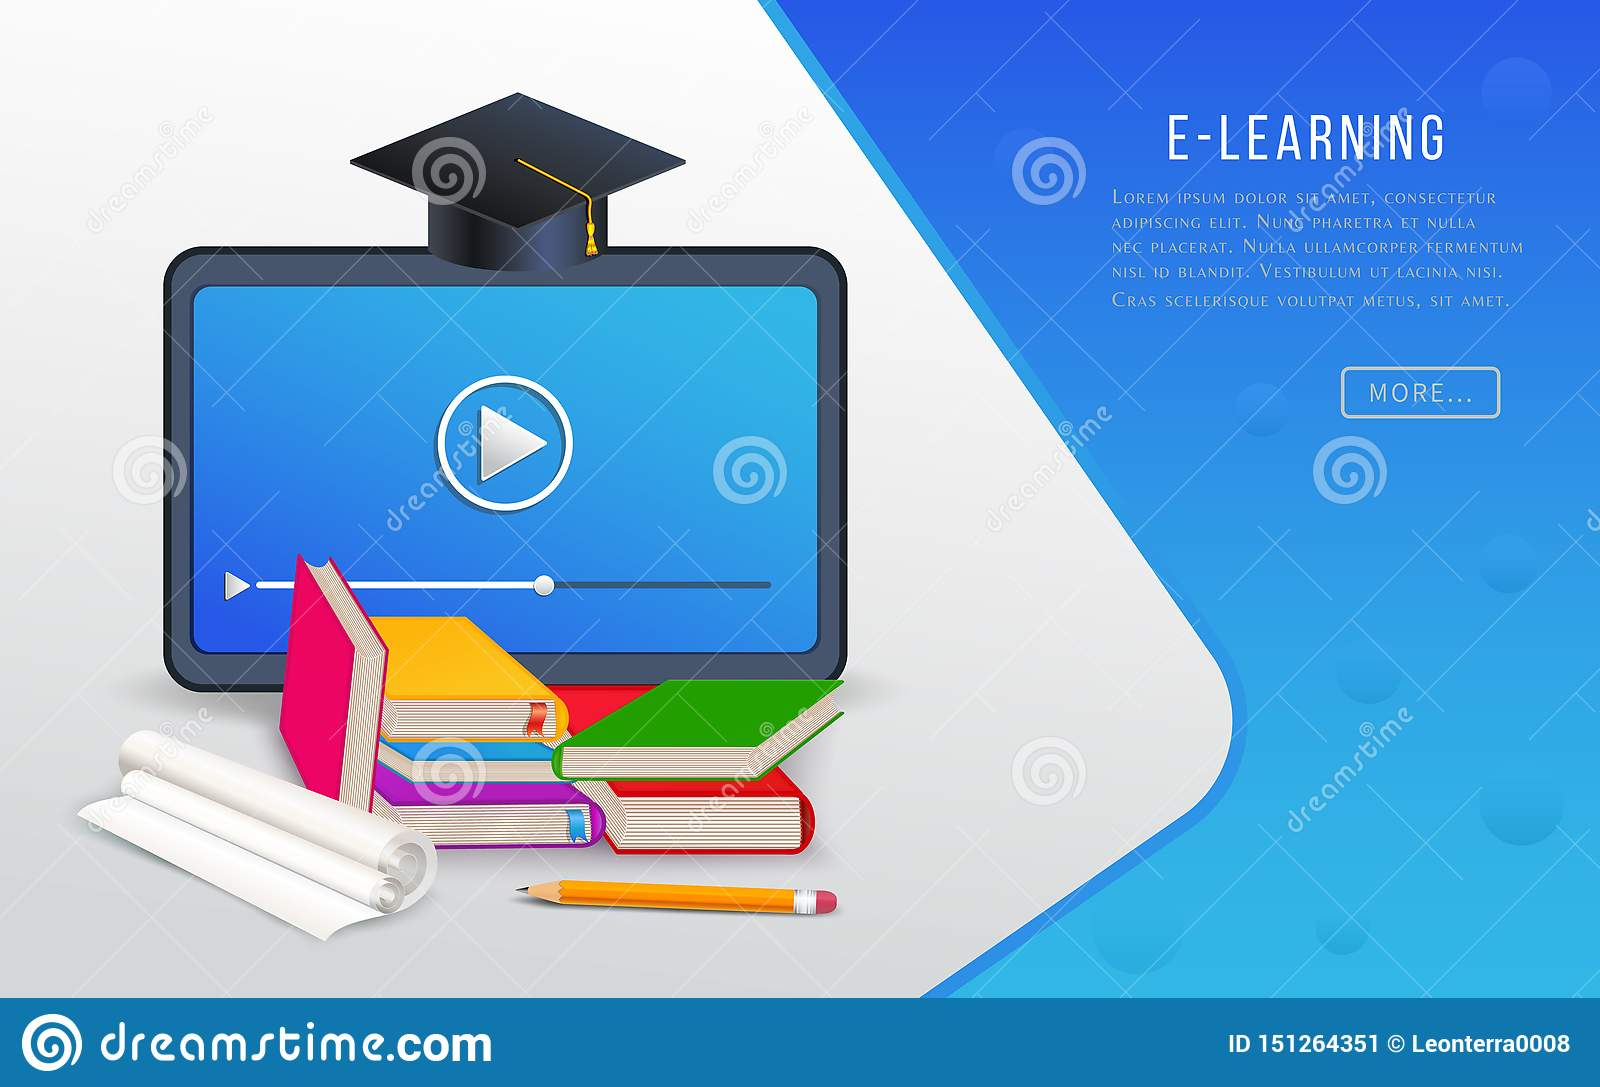 Online College Courses >> Online Education E Learning College Research Training